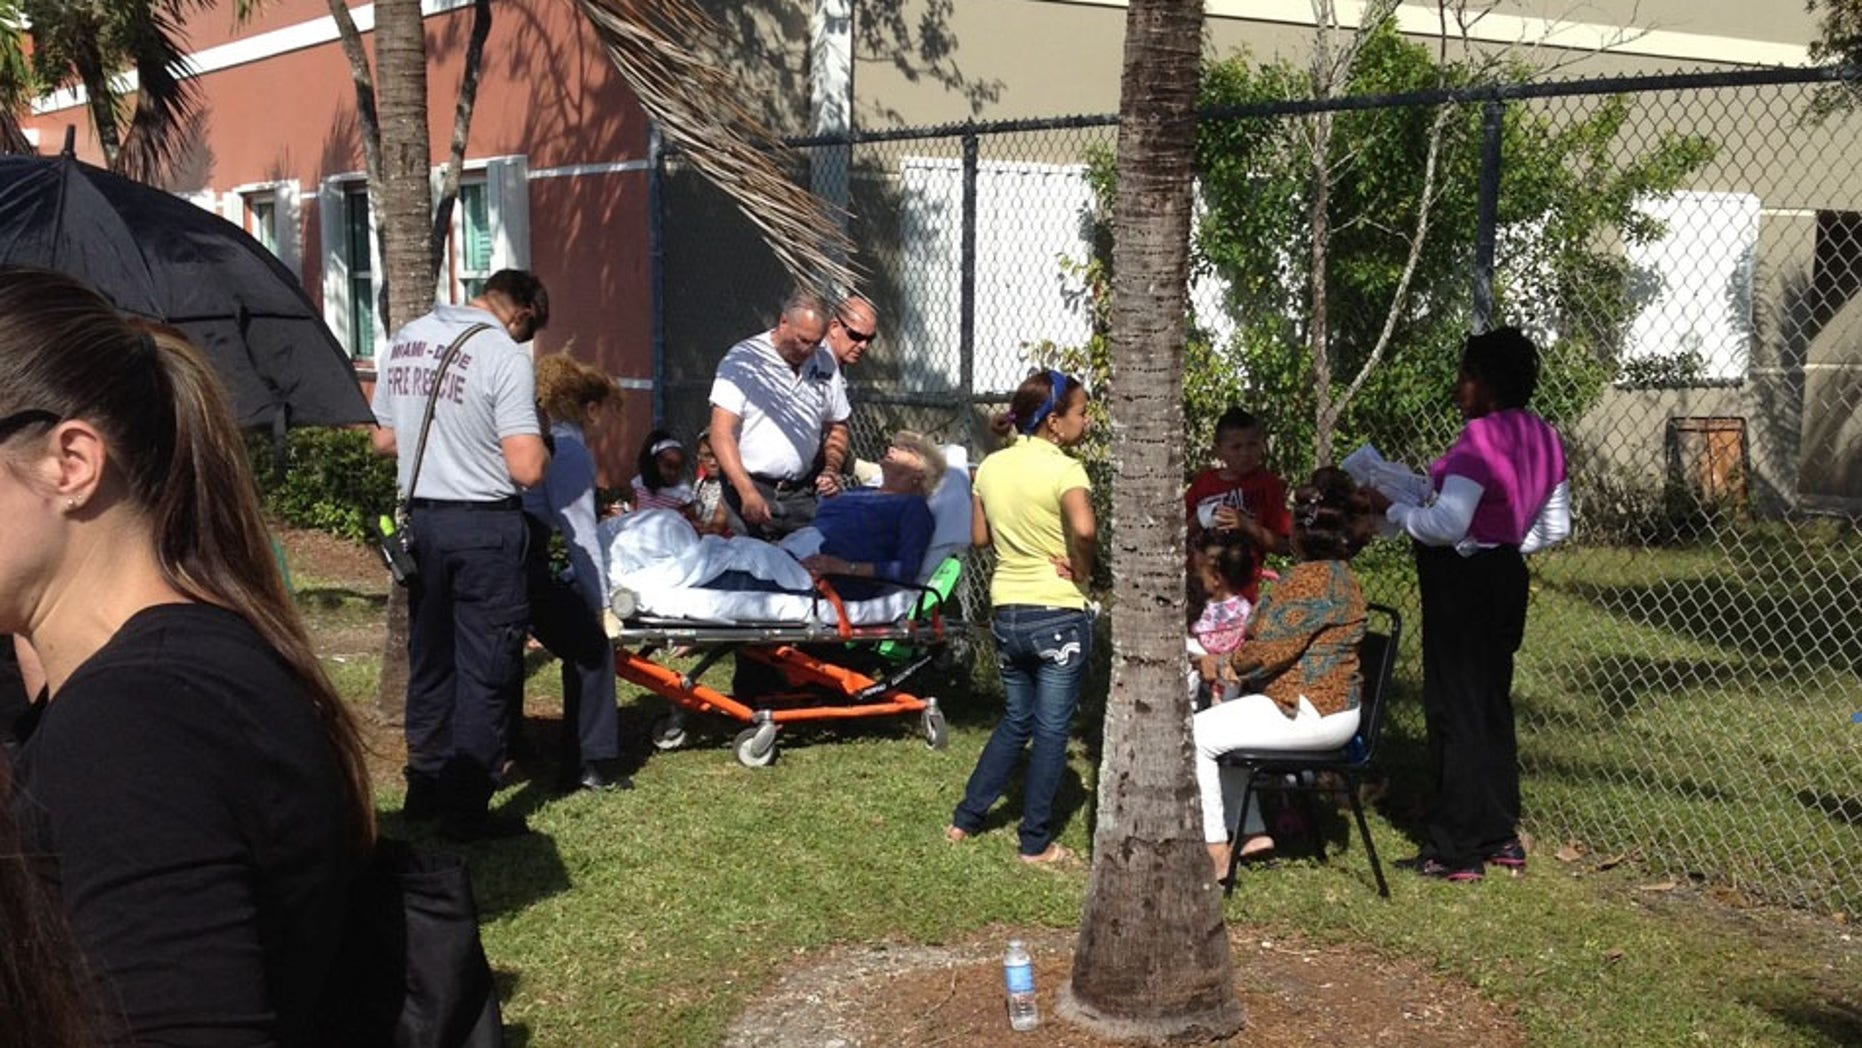 Tuesday, Nov. 6, 2012: A voter in the south Miami area appears to need medical assistance after waiting in 80-degree temperatures to vote.